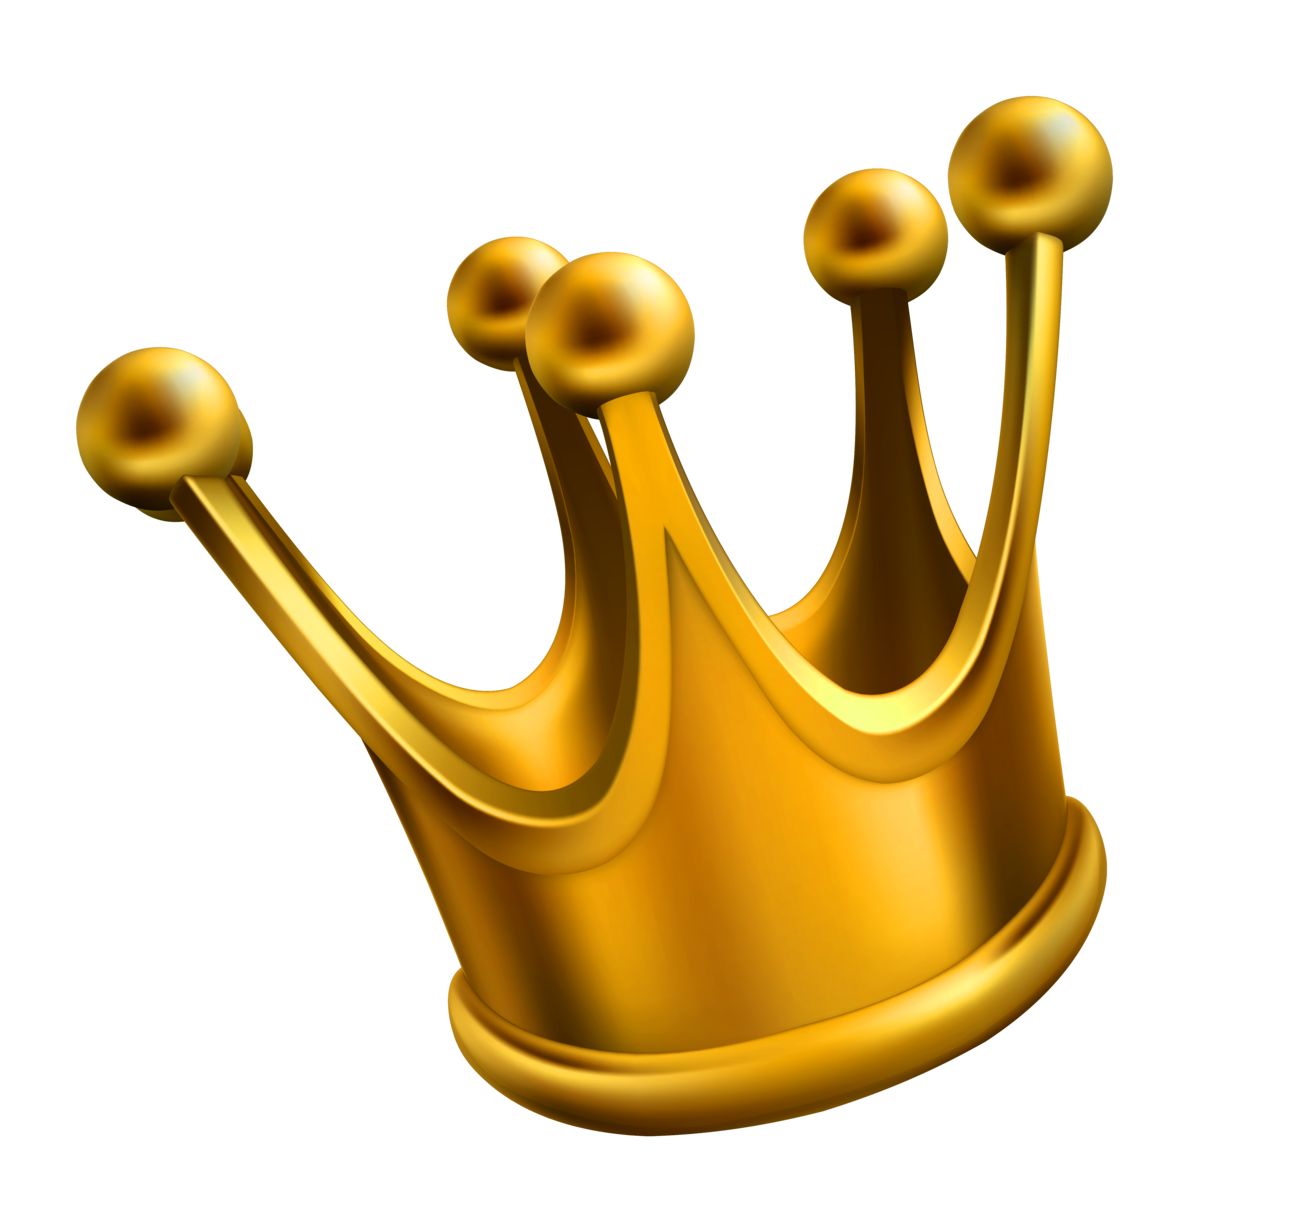 Crown png clipart picture black and white stock Simple Golden Crown Png Clipart picture black and white stock